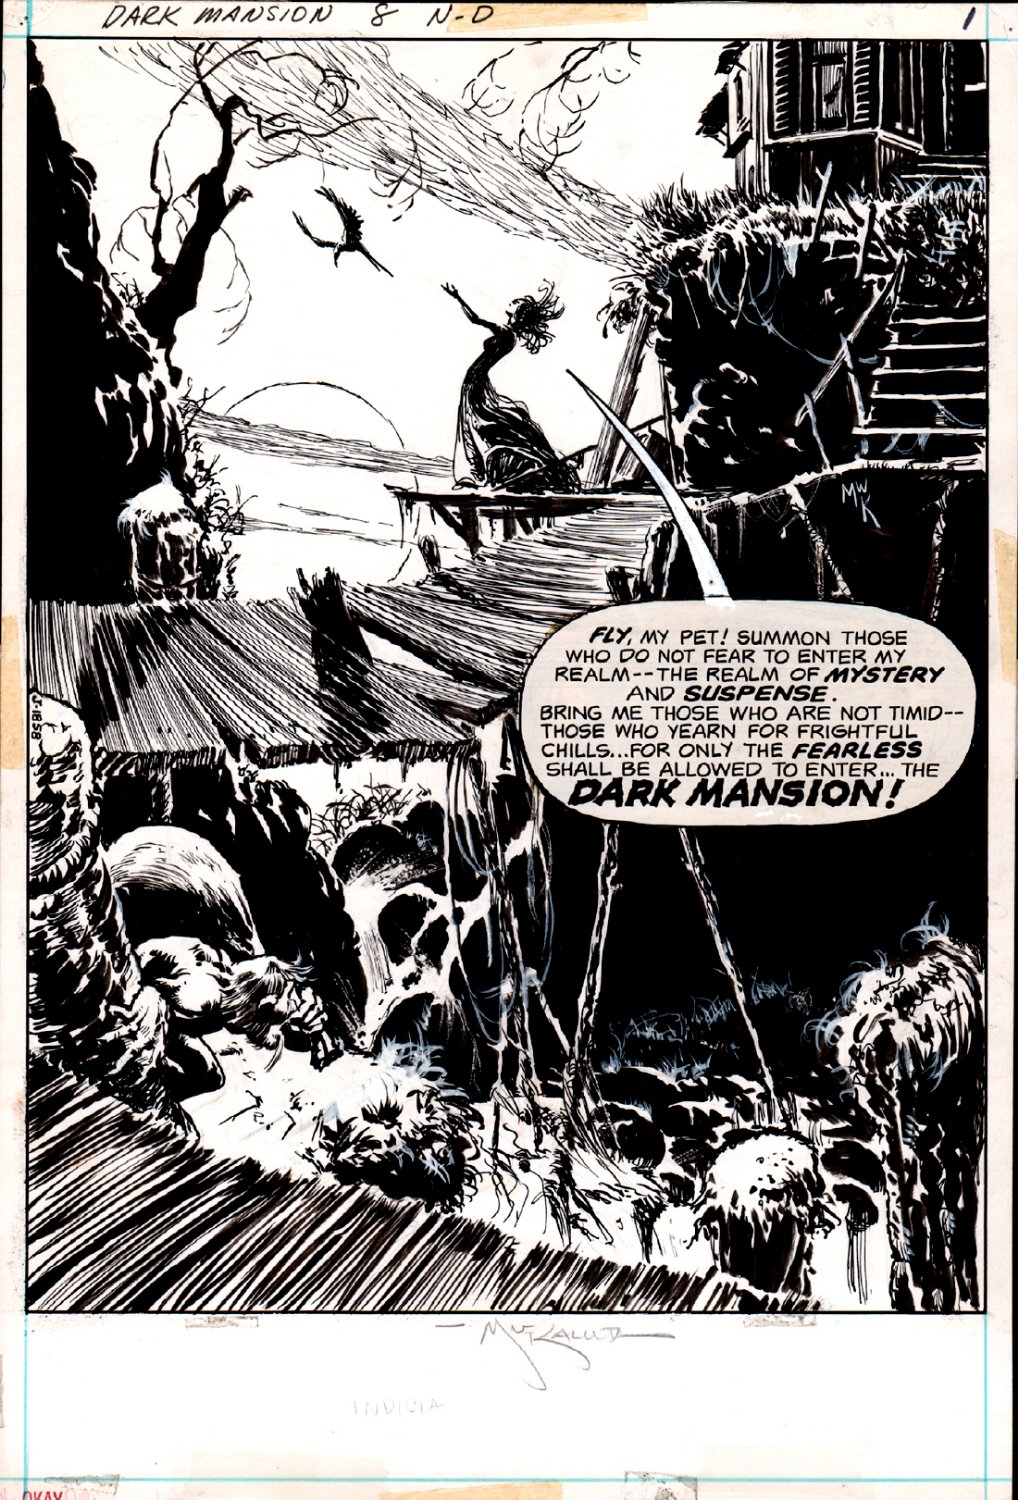 Forbidden Tales of Dark Mansion #8 p 1 Frontis SPLASH (1972)